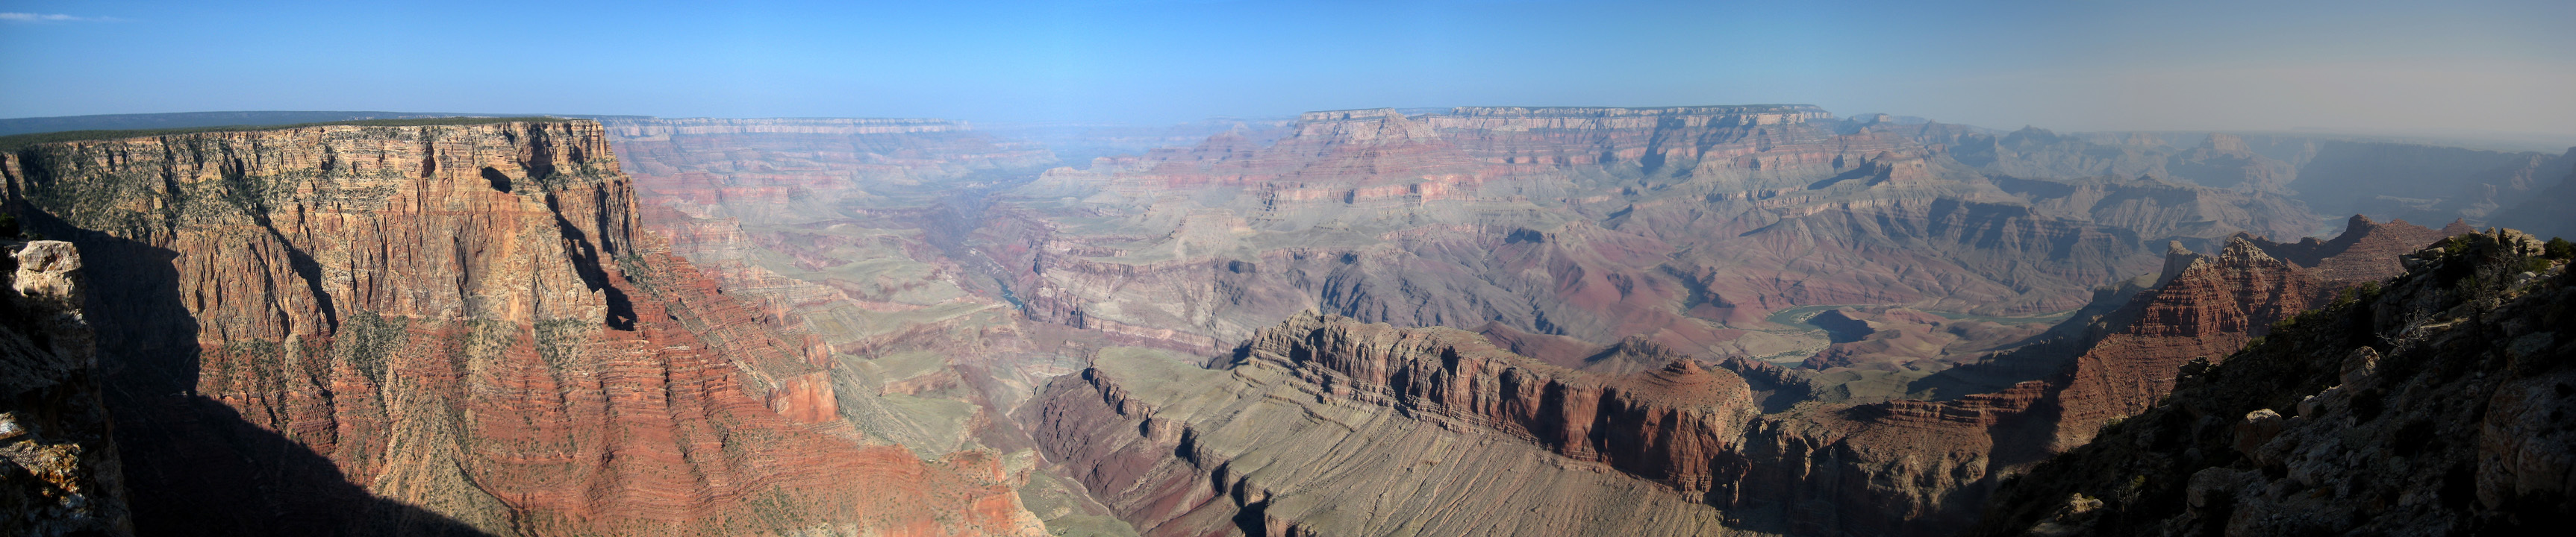 Landscapes grand canyon nature HD Wallpaper